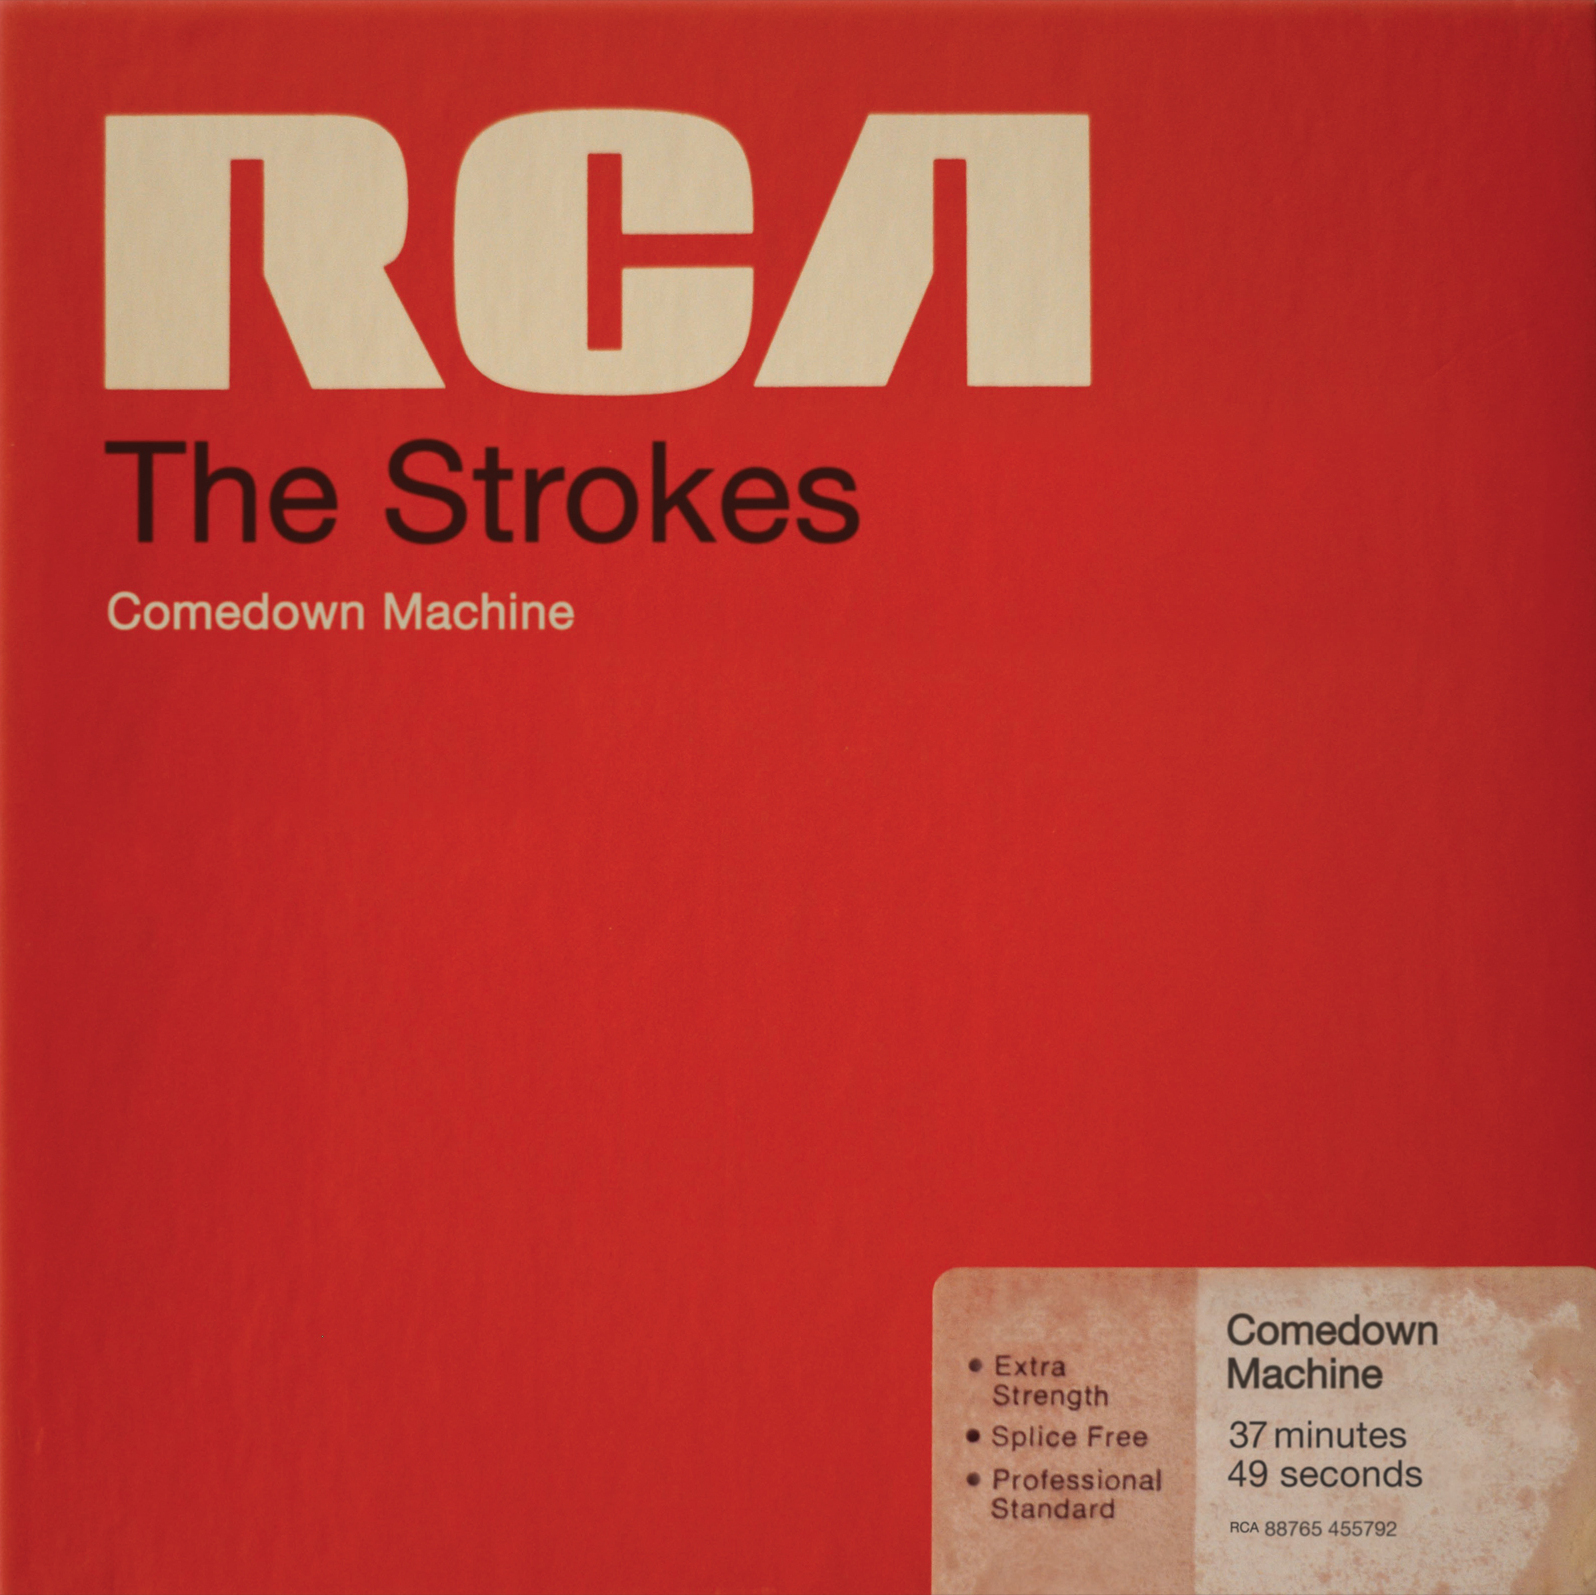 Comedown Machine, the fifth studio album by The Strokes.